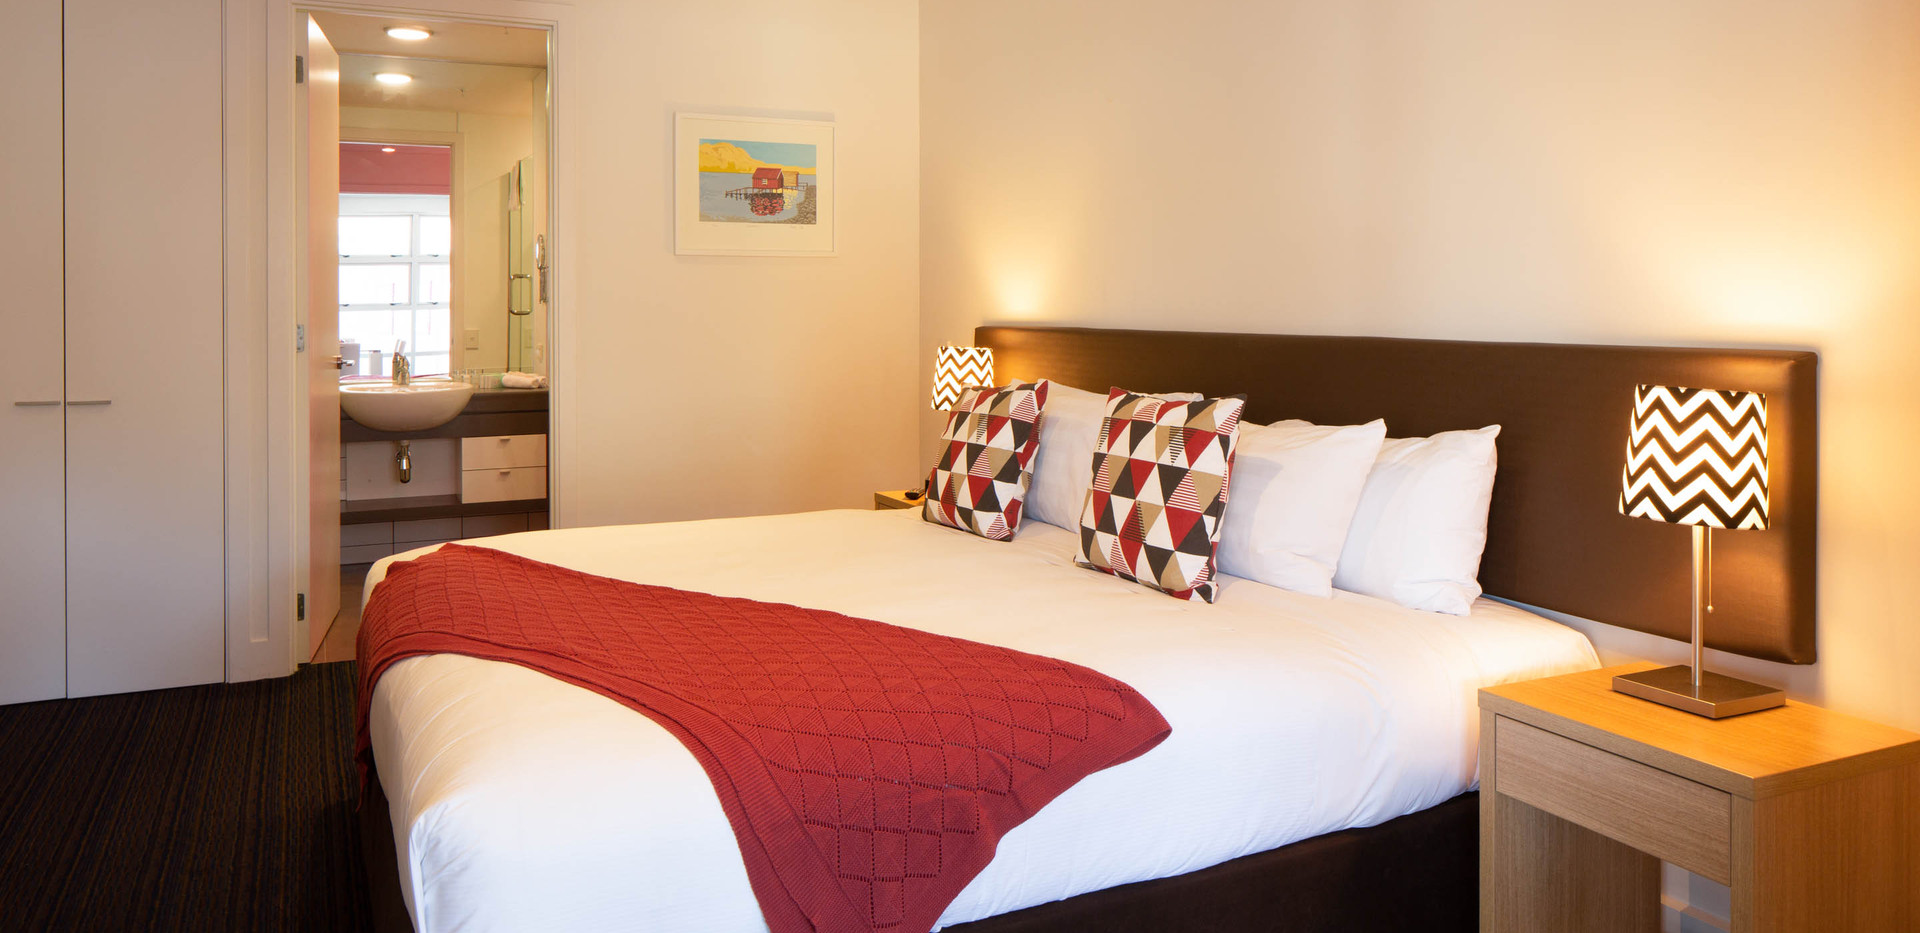 Marina: 2 Bedroom Lake View Apartment, Queenstown Stays